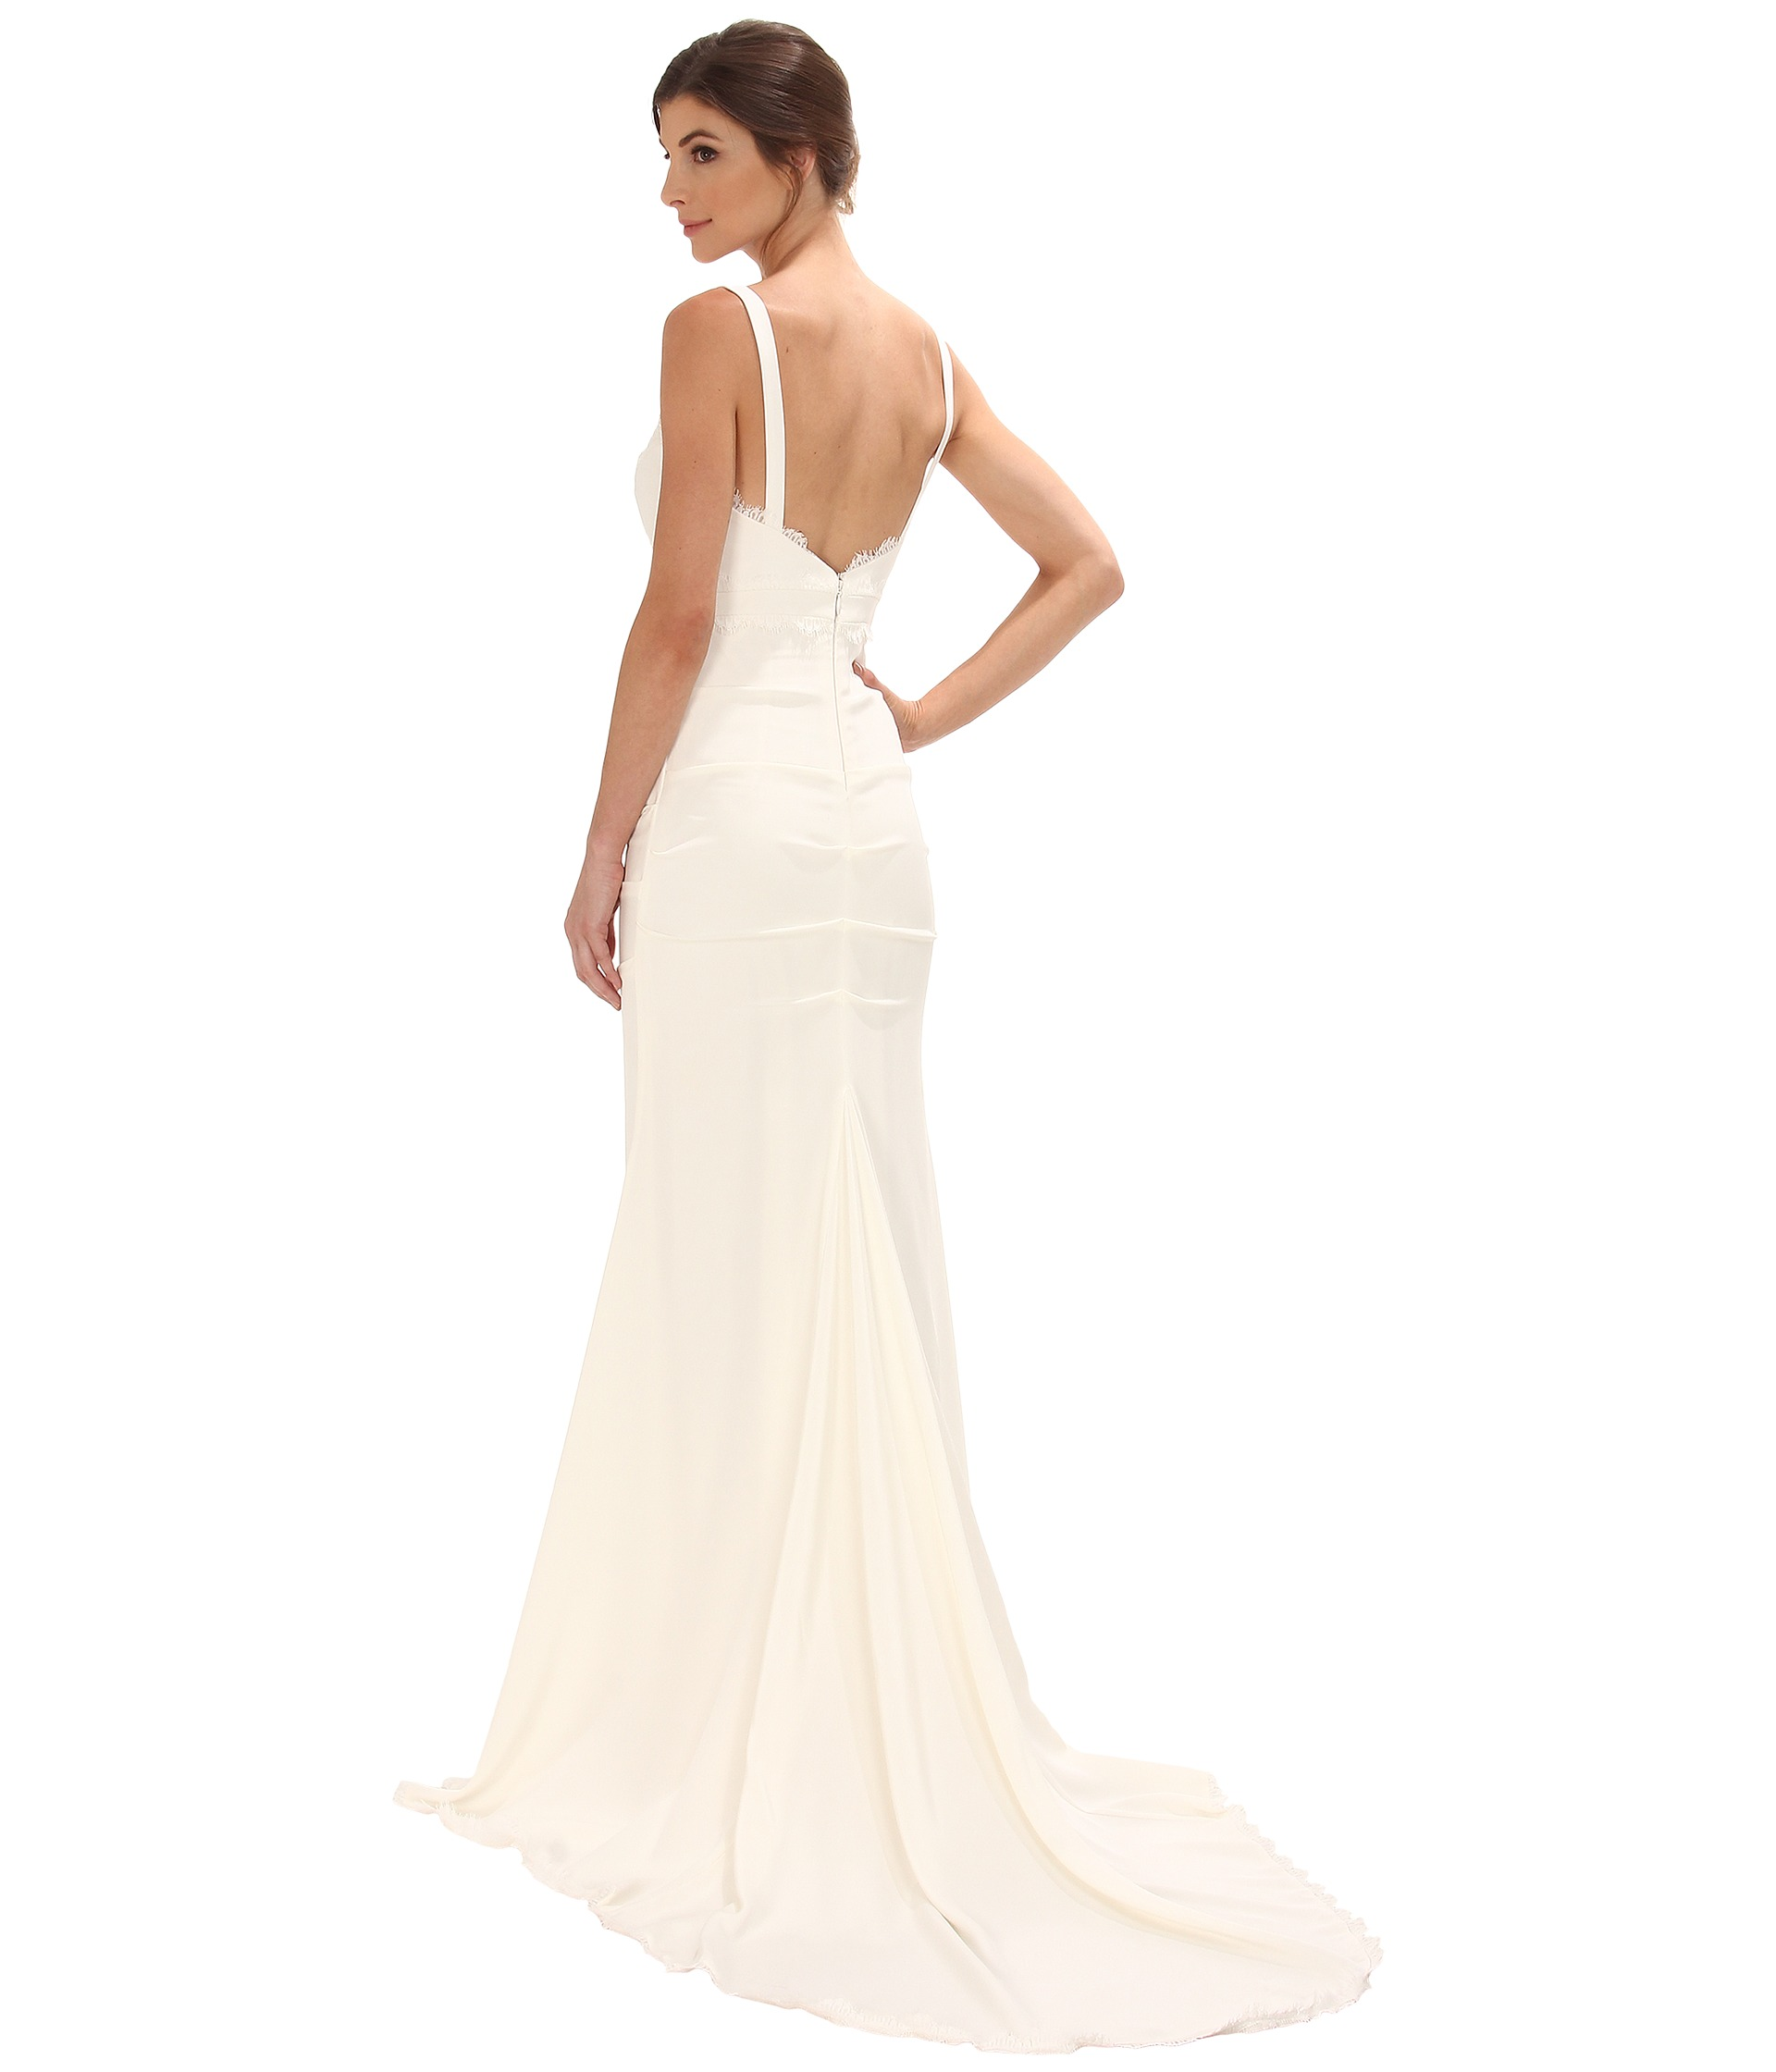 Old Fashioned Nicole Miller Bridal Gowns Pictures - Best Evening ...